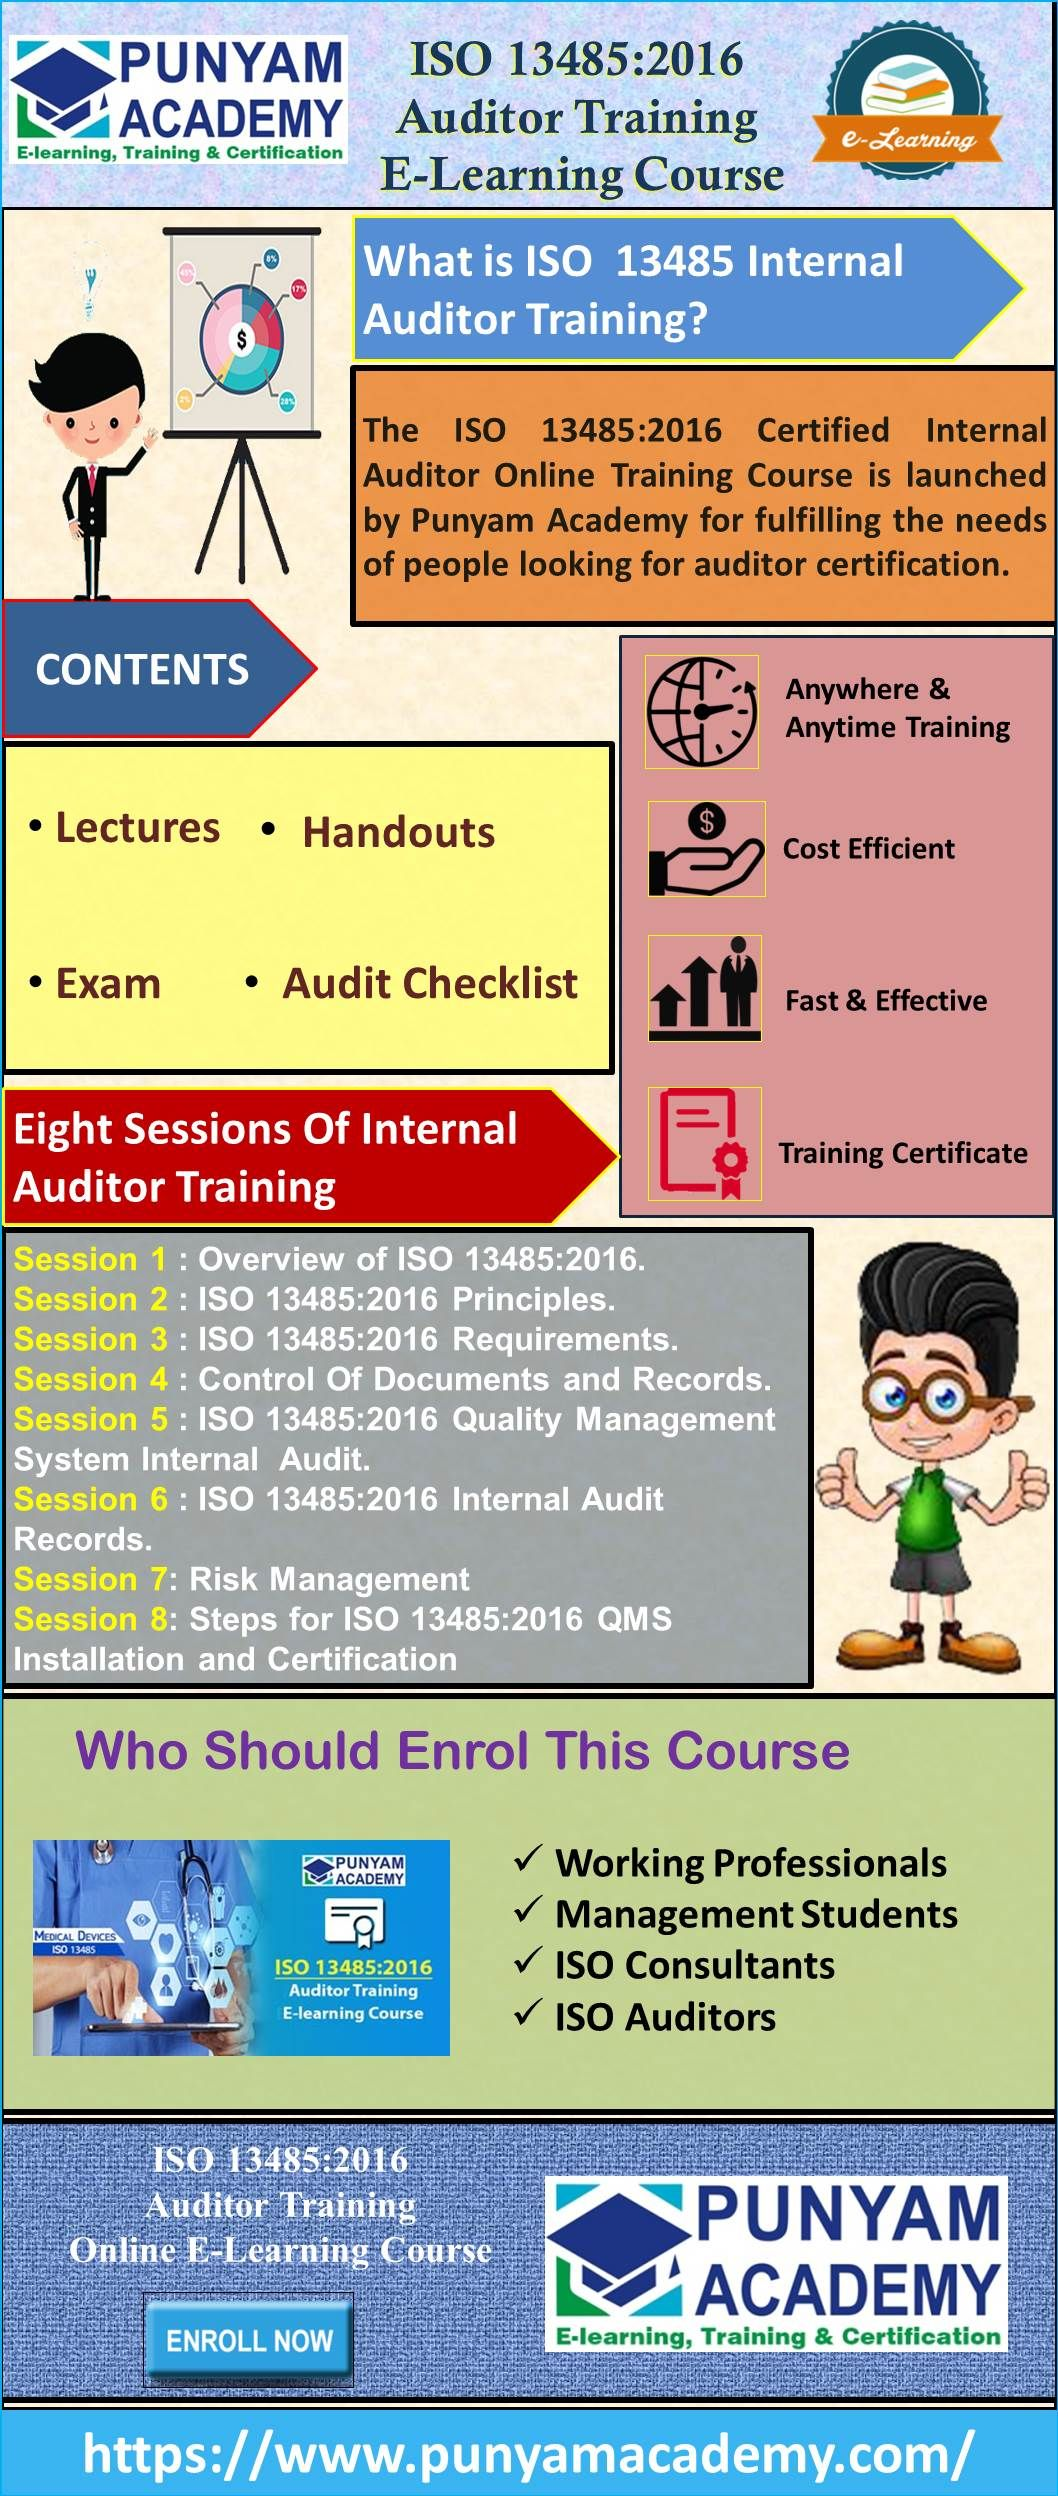 Punyam Academy's Online ISO 13485 Auditor course is